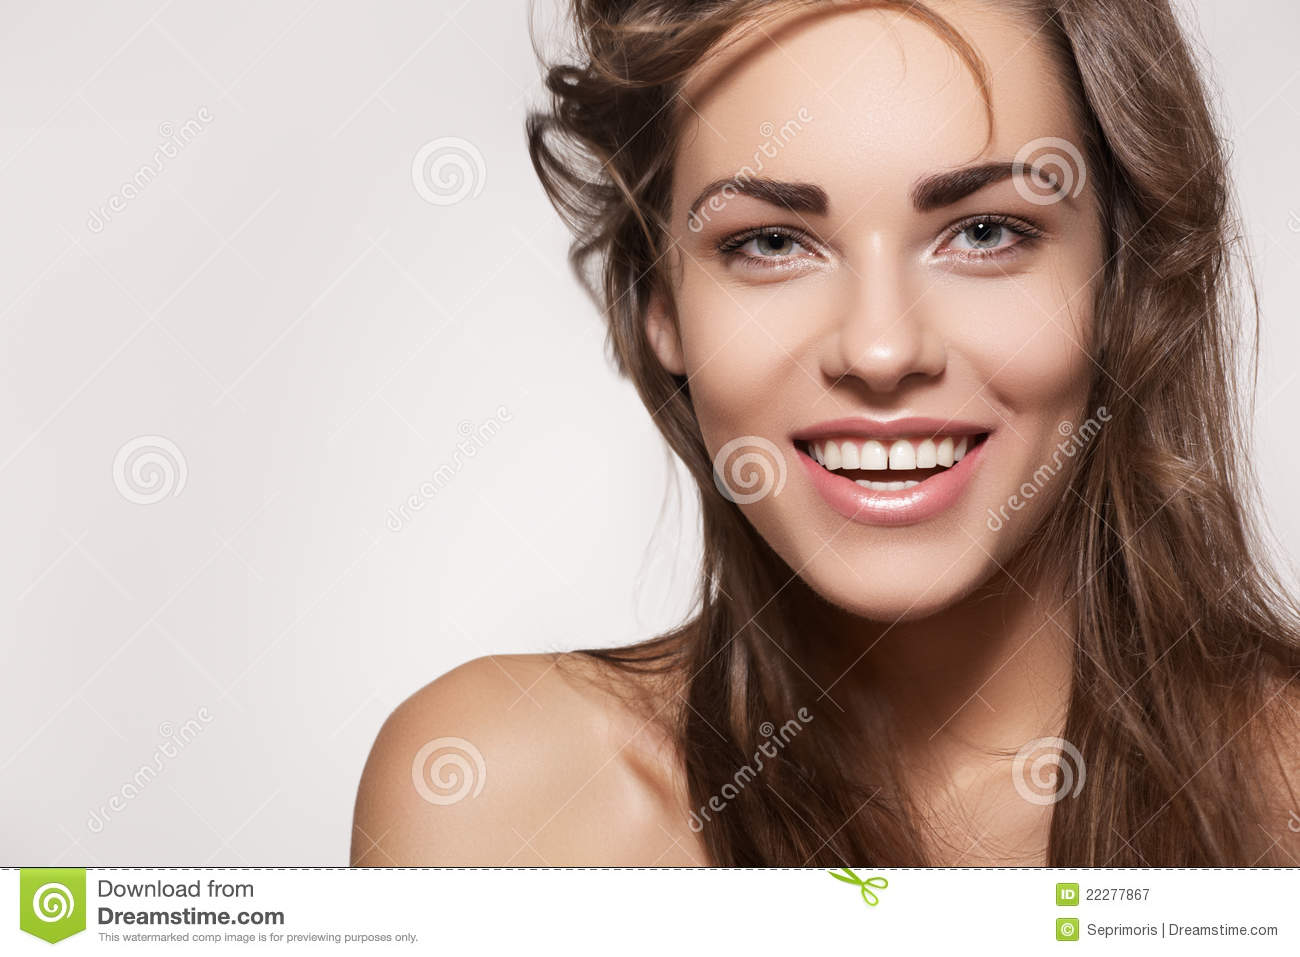 Happy beautiful woman. Cute smile with white teeth